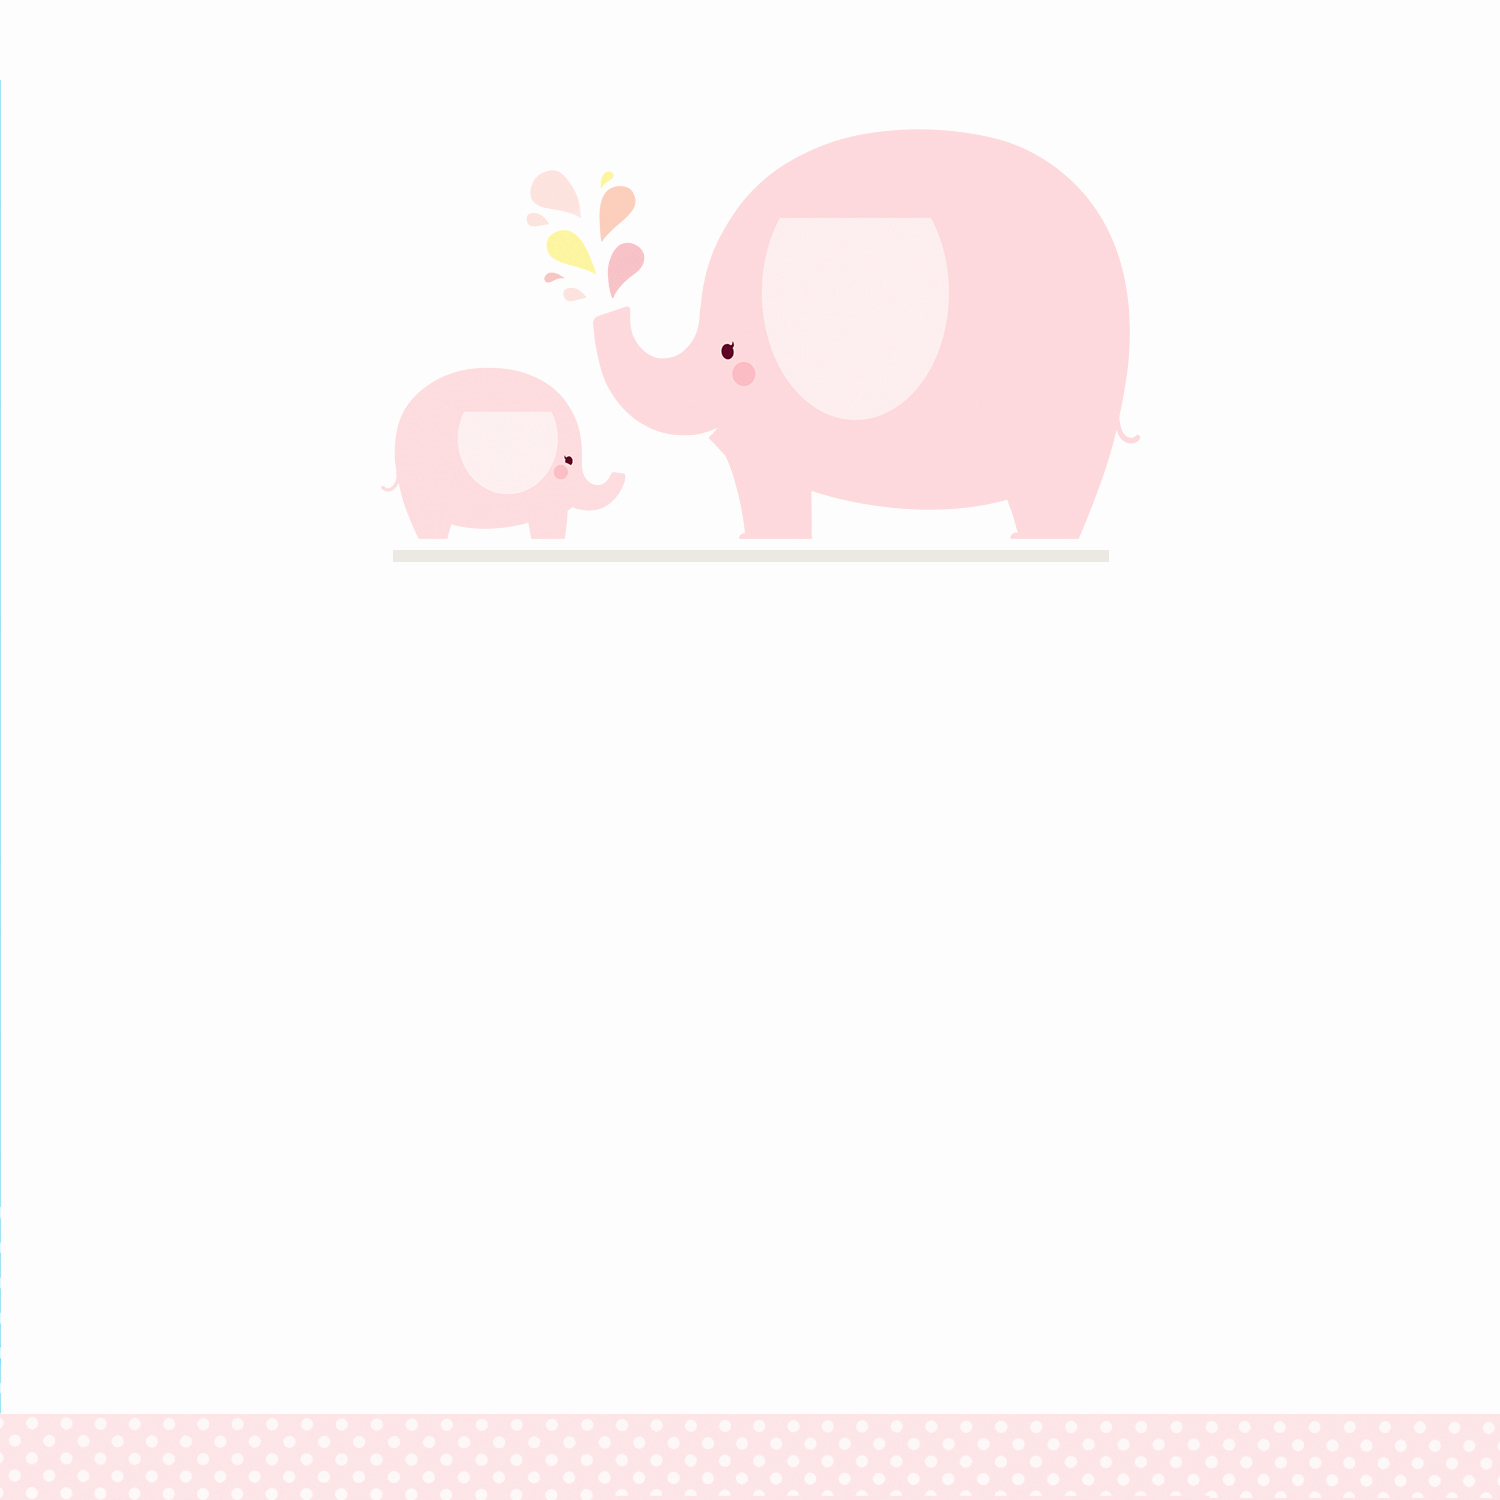 Blank Baby Shower Template Luxury Pink Baby Elephant Free Printable Baby Shower Invitation